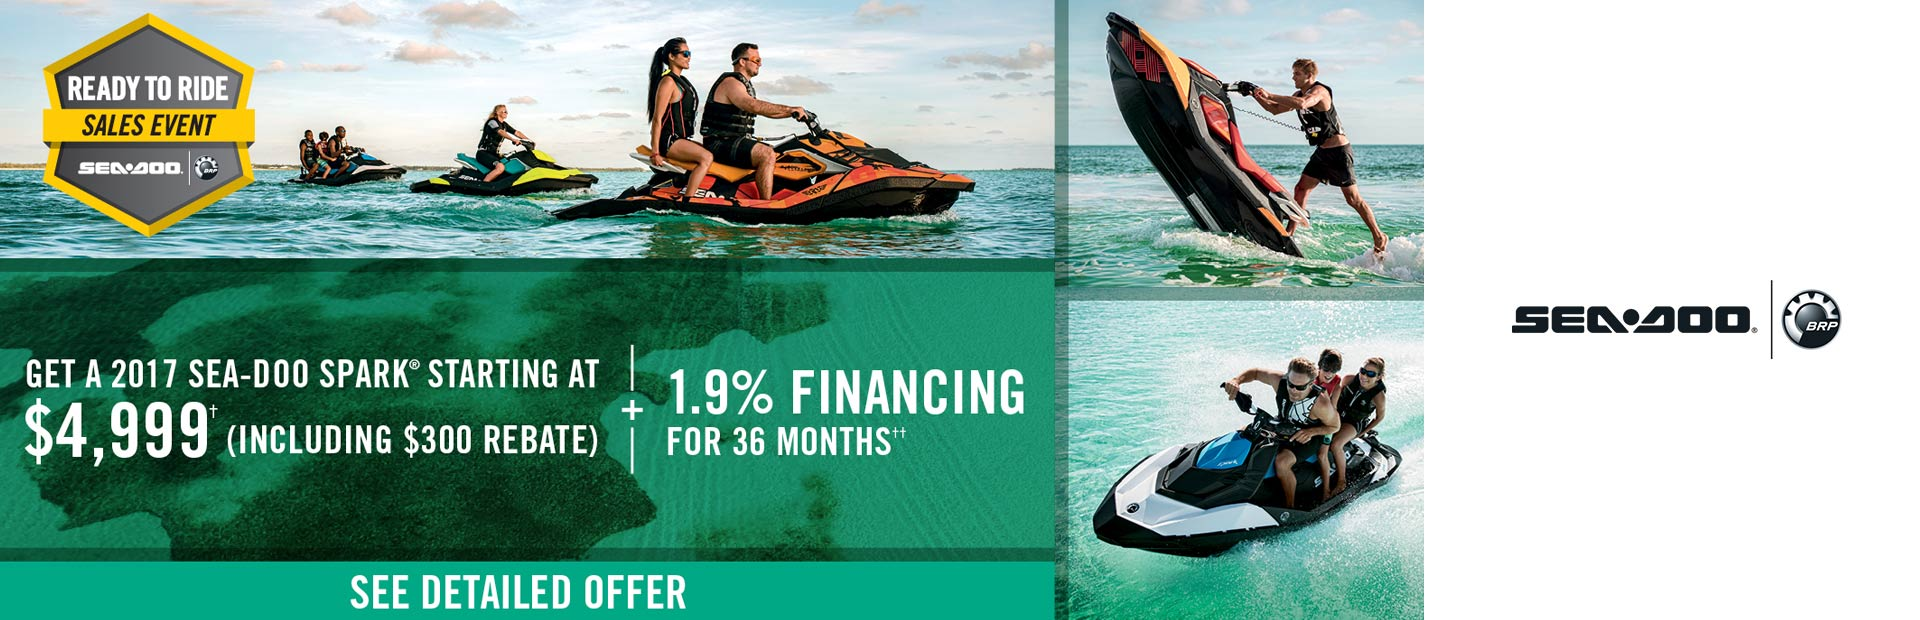 Ready to Ride Sales Event - Sea-Doo Spark